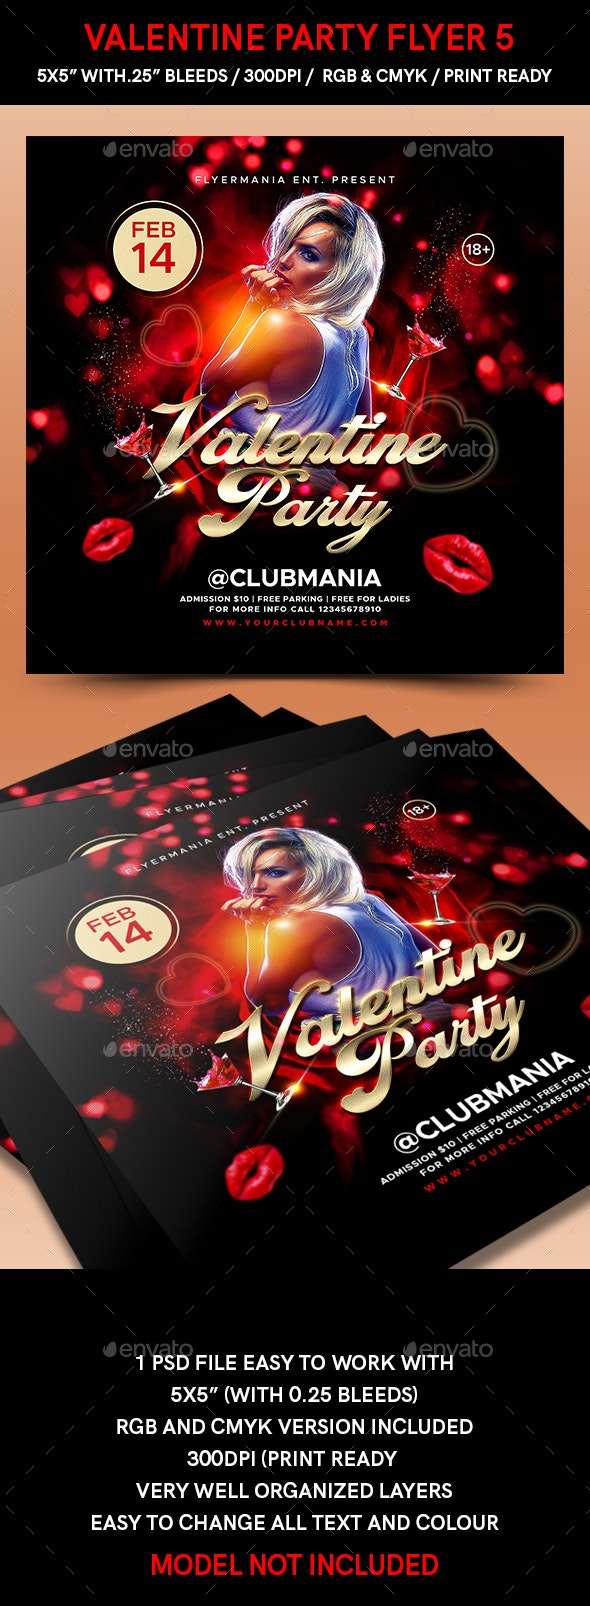 Valentine Party Flyer 5 - Flyers Print Templates